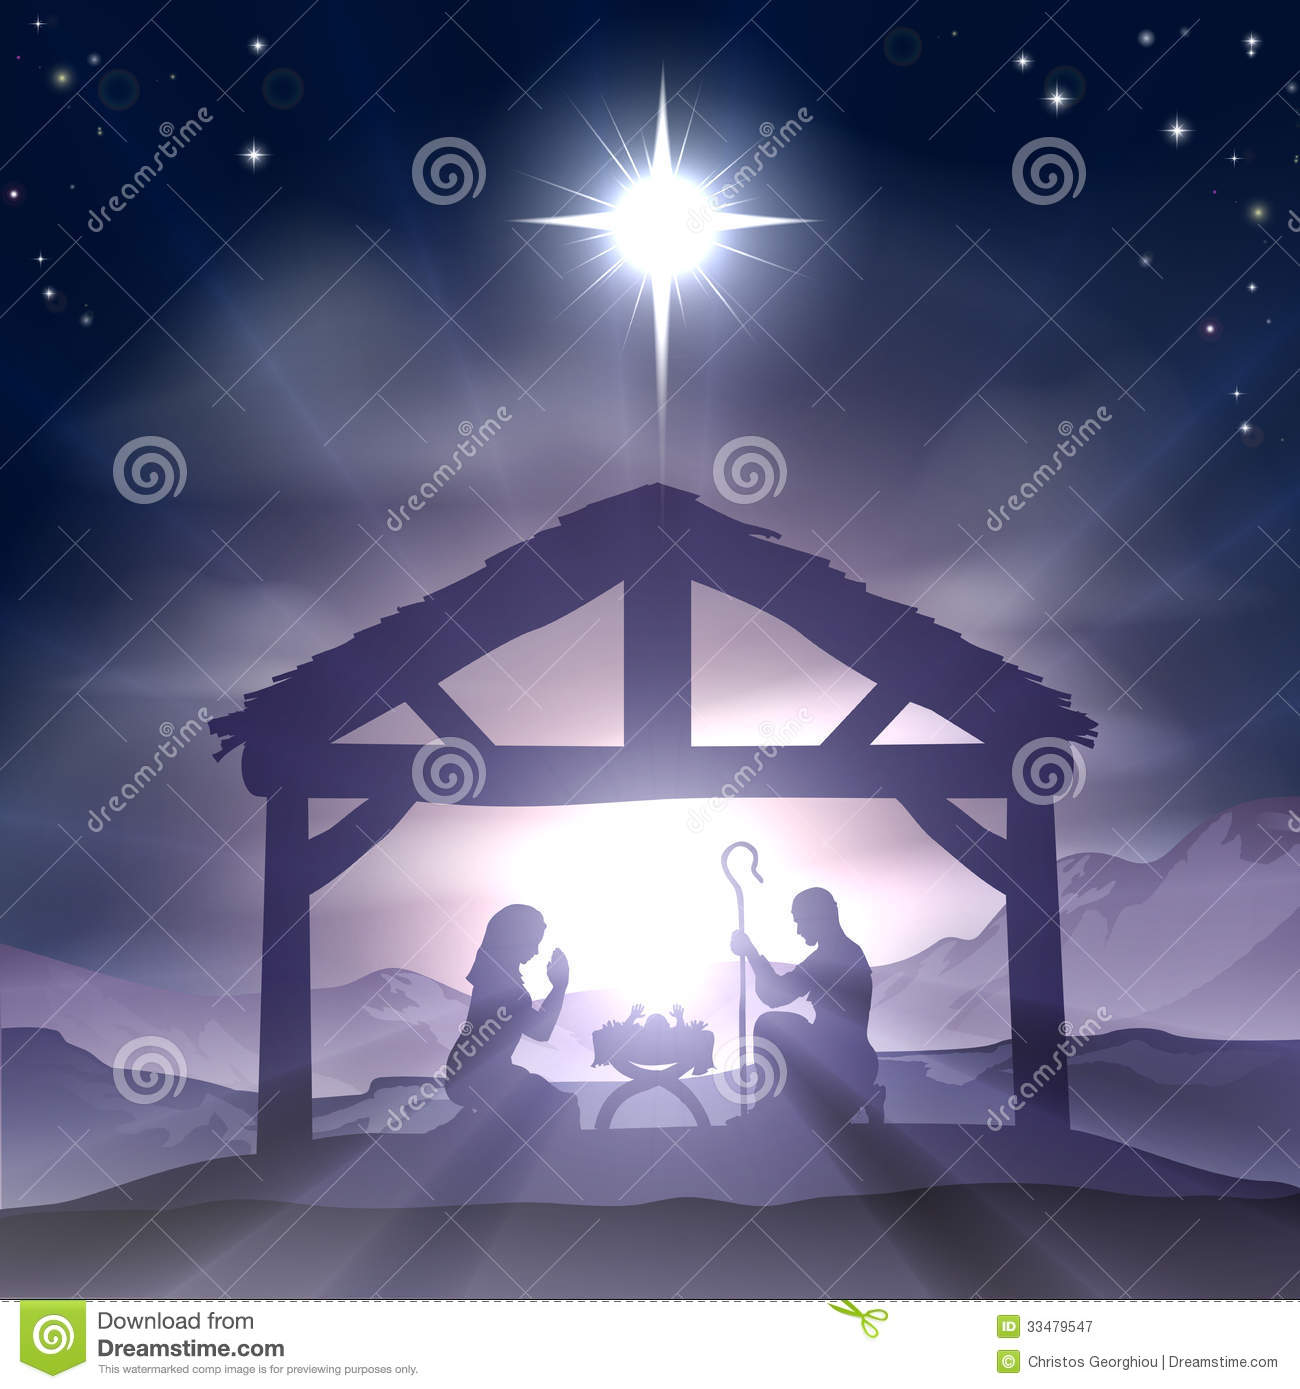 Christmas Nativity Jesus Birth Stock Images - Image: 19534324